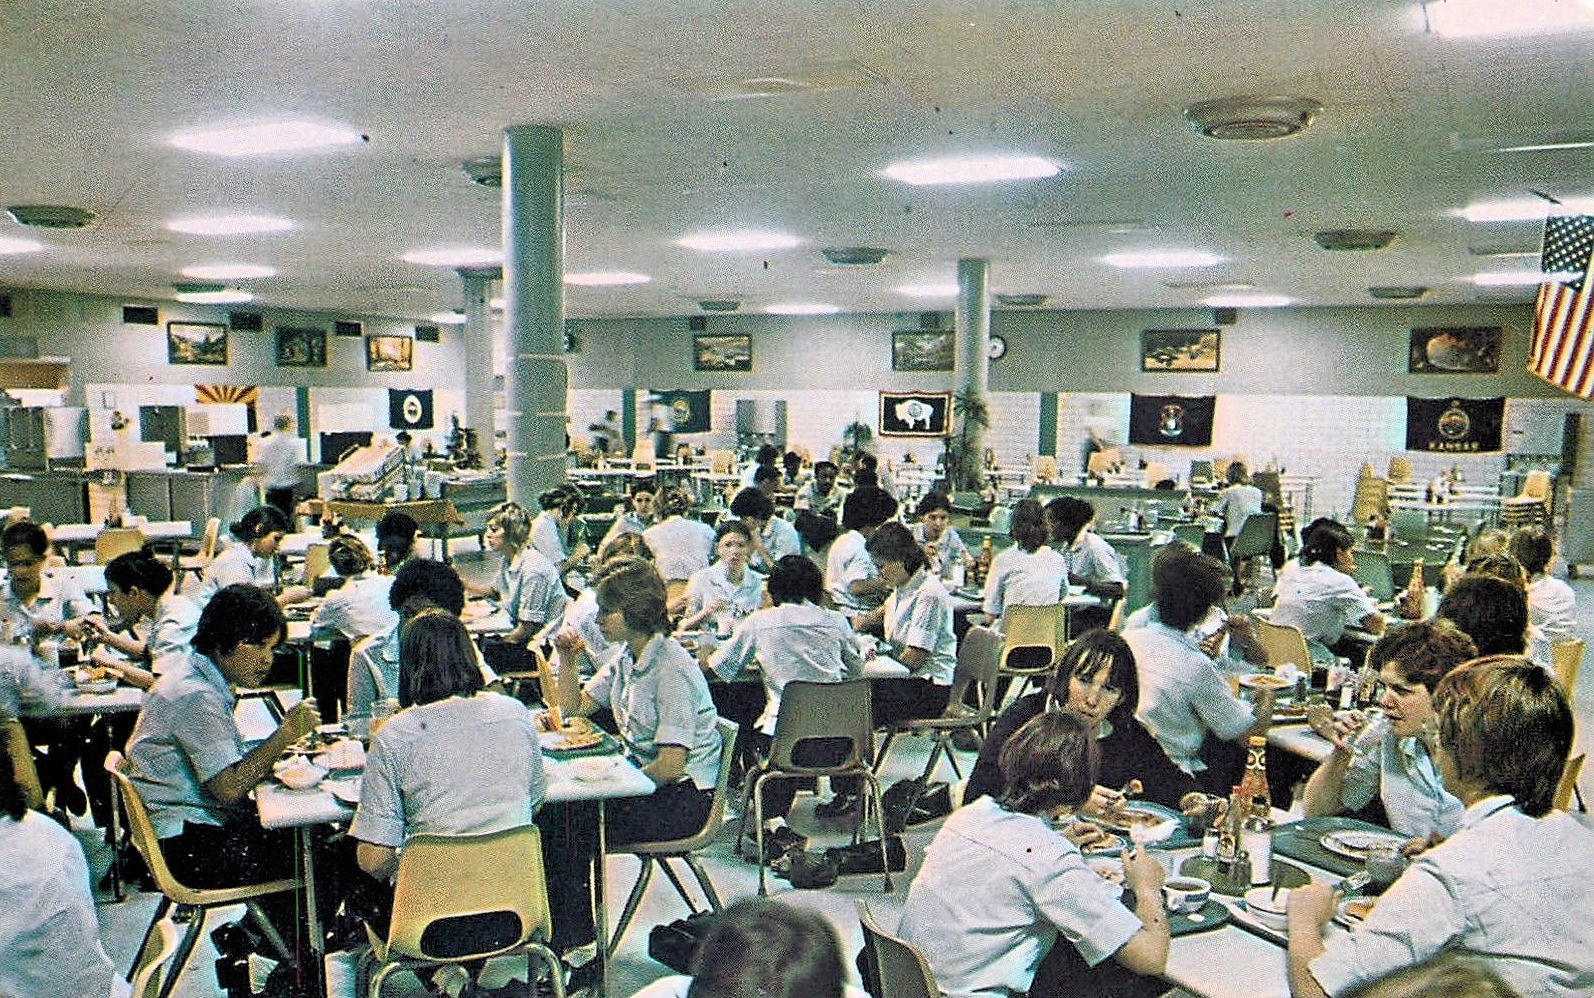 File:Lackland Air Force Base - WAF Dining Hall 1970s.jpg